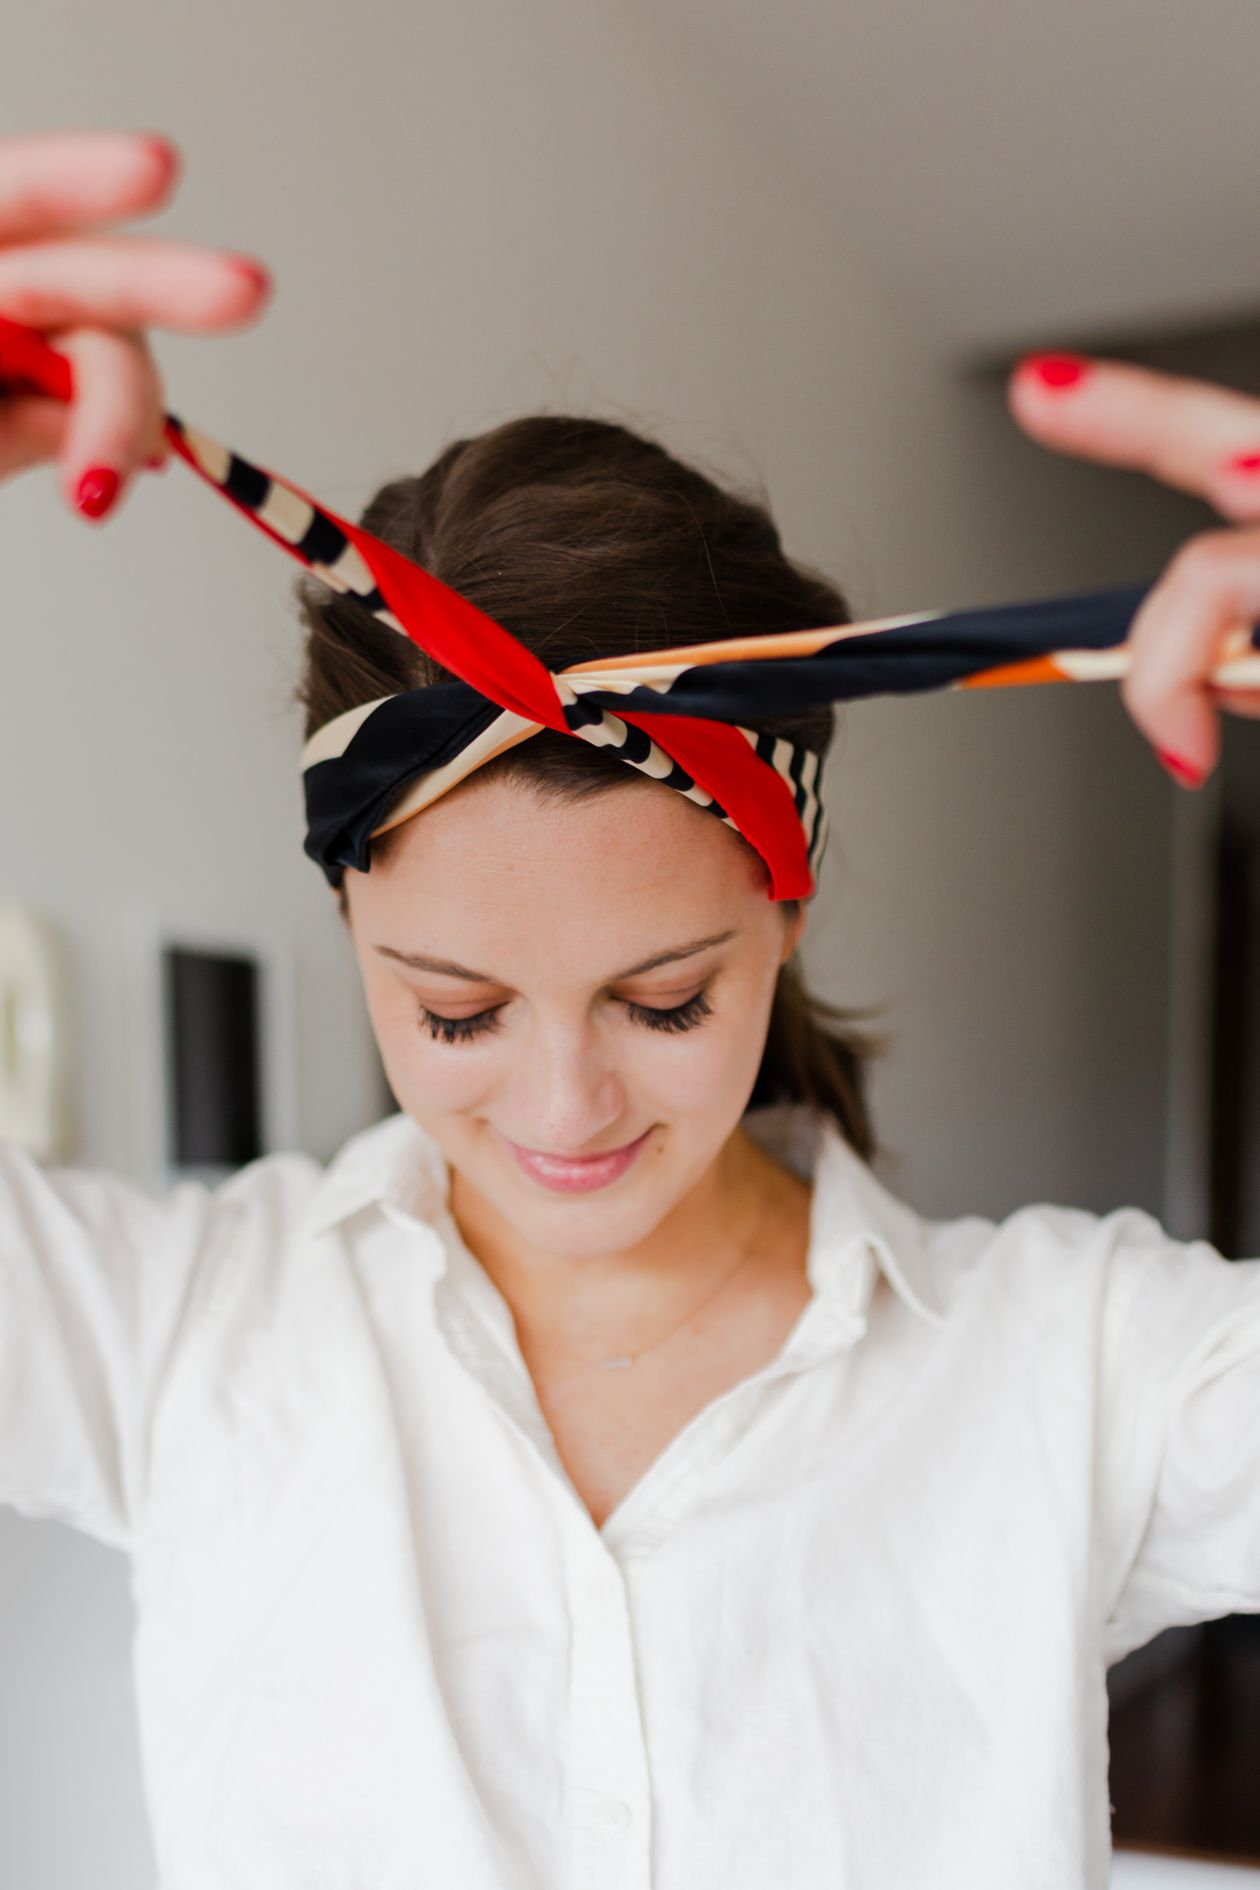 How to Tie a Hair Scarf | The Golden Girl Blog by Jess Keys